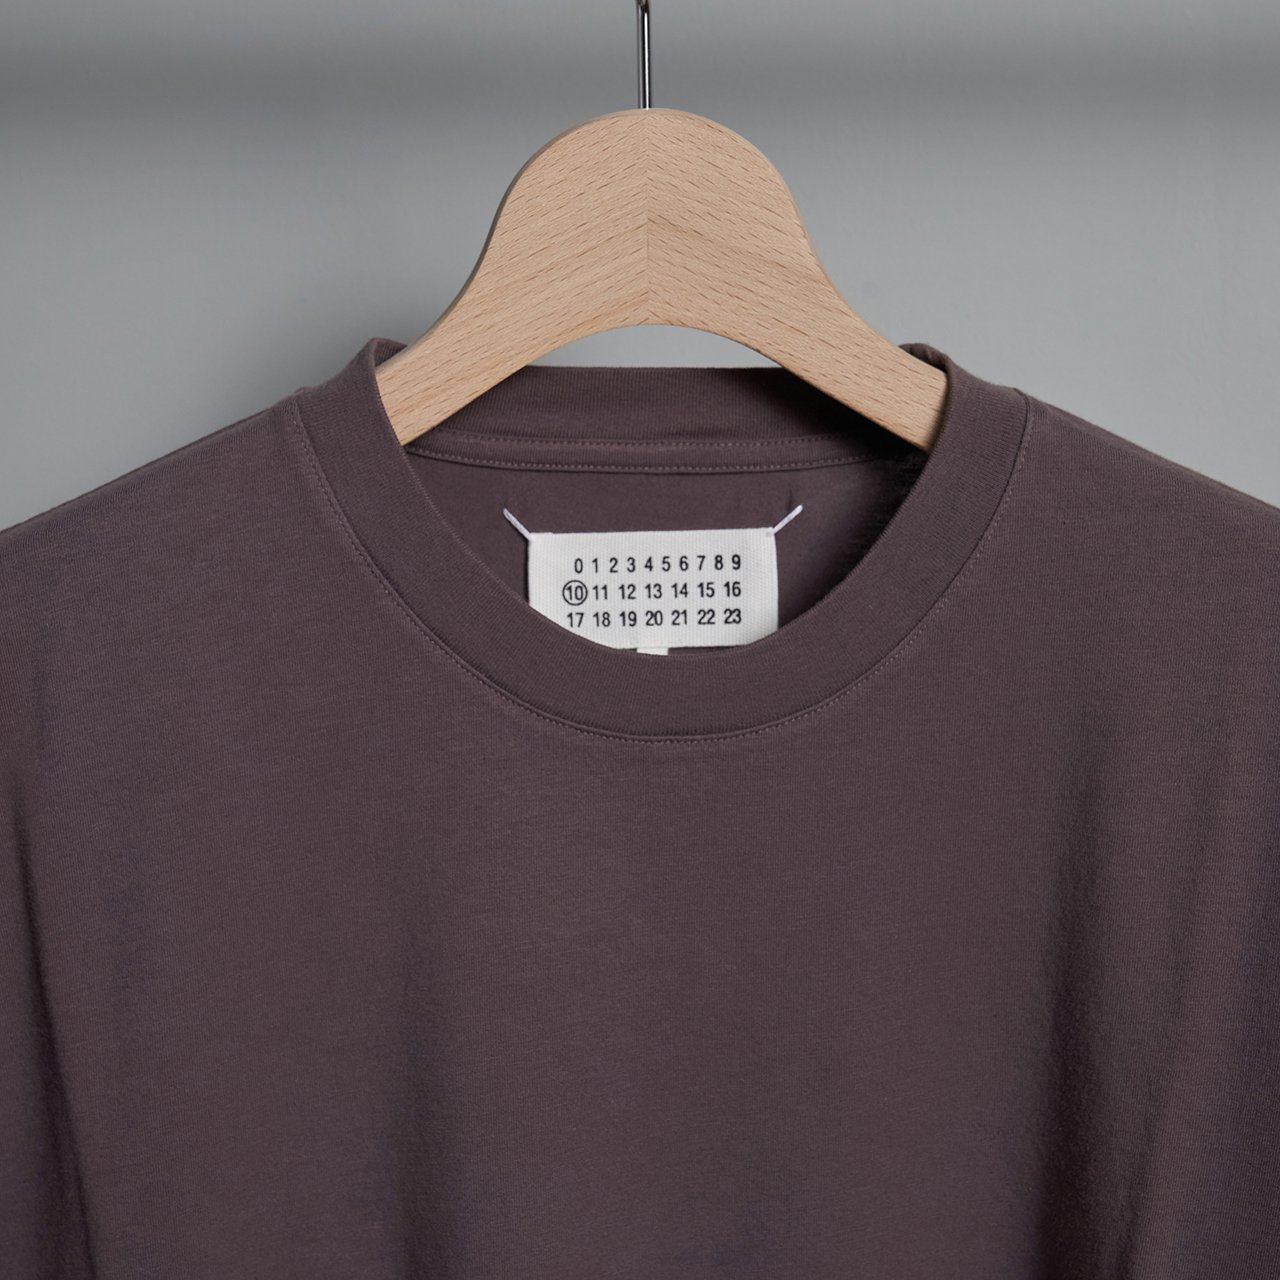 Maison Margiela PARIS <BR> COTTON  T - SHIRT <BR>パープルグレー